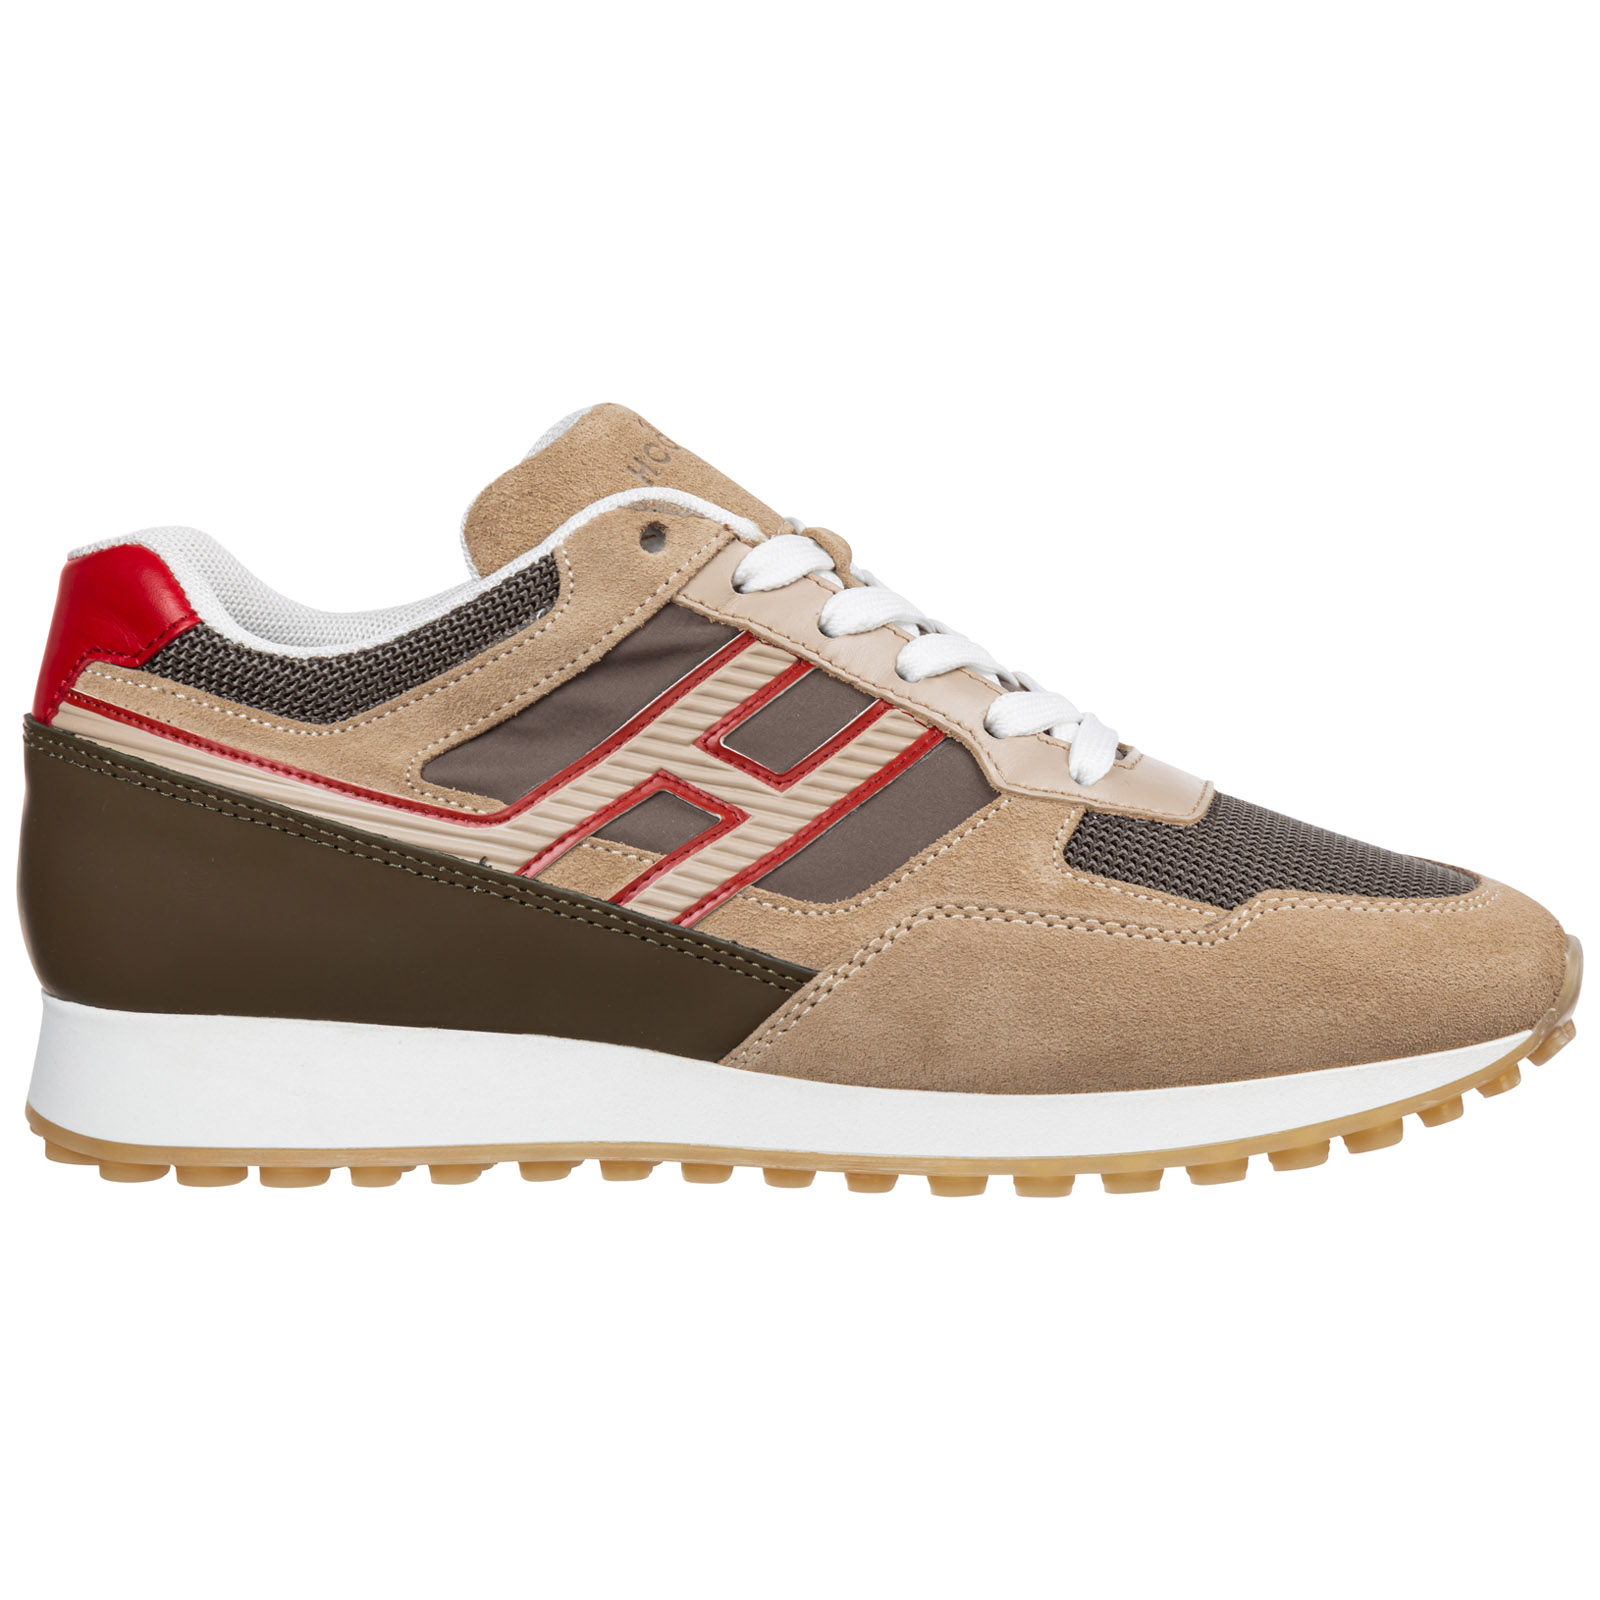 Hogan Sneakers MEN'S SHOES SUEDE TRAINERS SNEAKERS H383